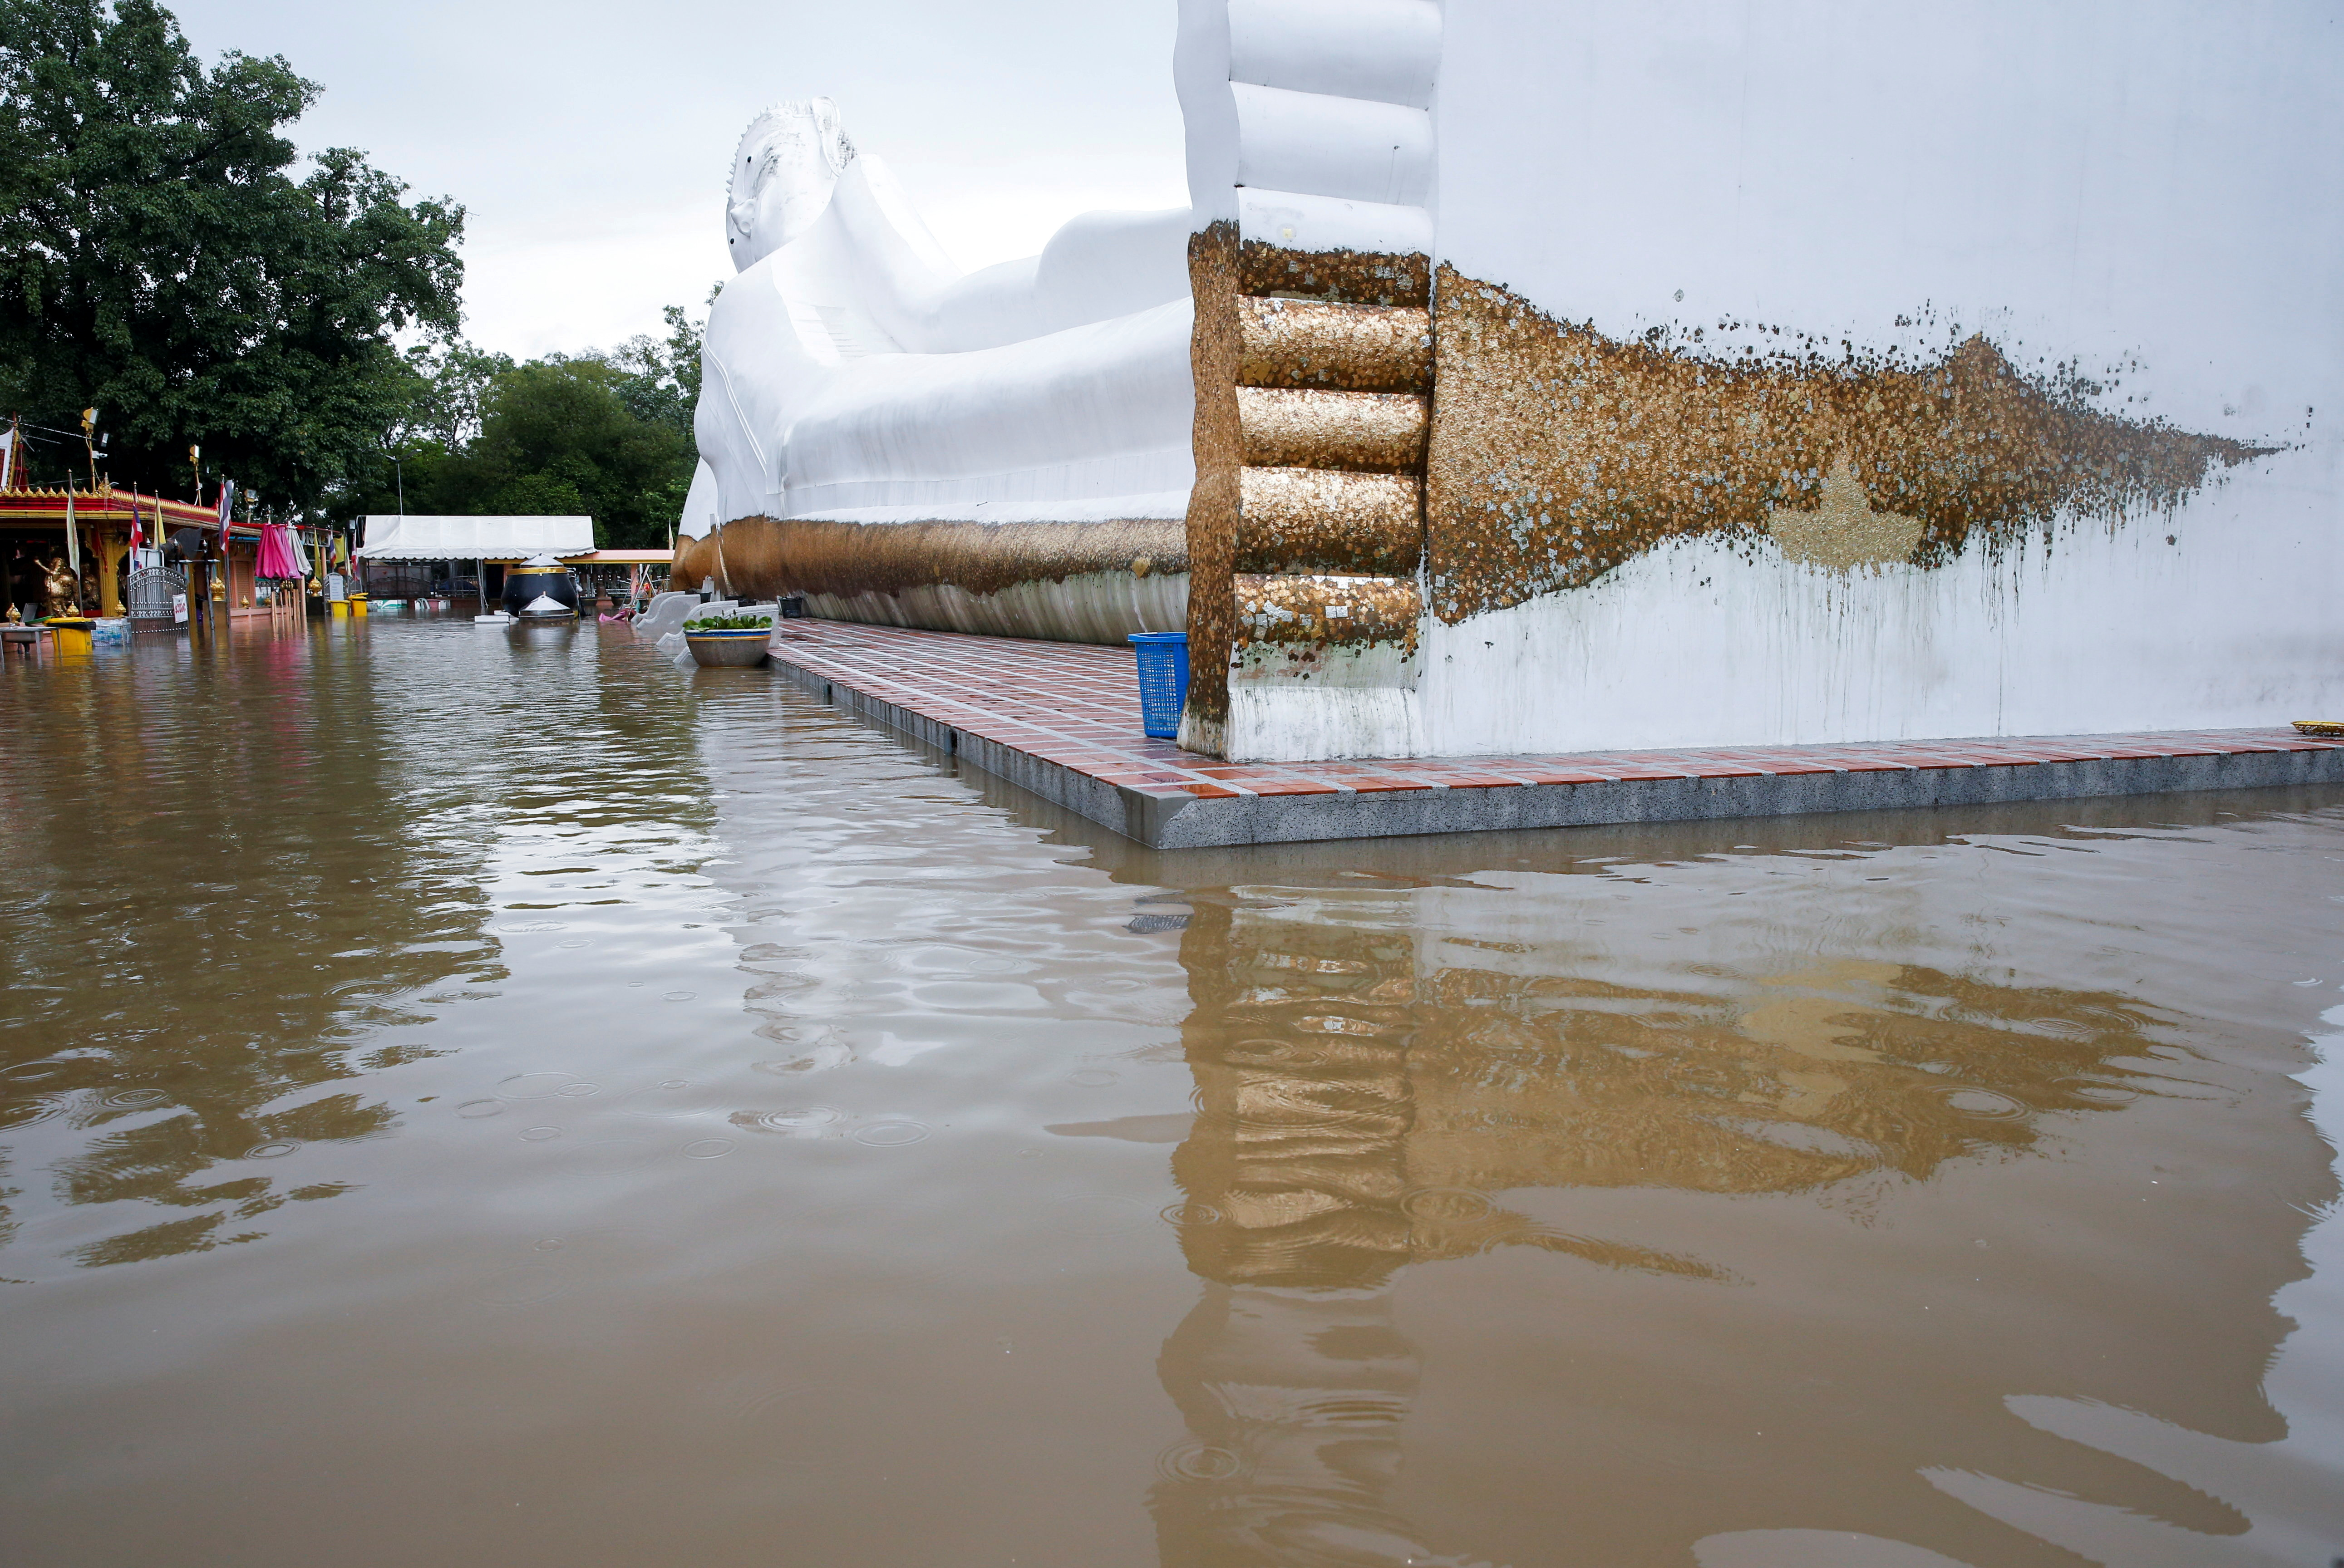 A lying Buddha statue is seen surrounded by floodwaters at a temple in Ayutthaya, Thailand, October 6, 2021. REUTERS/Soe Zeya Tun